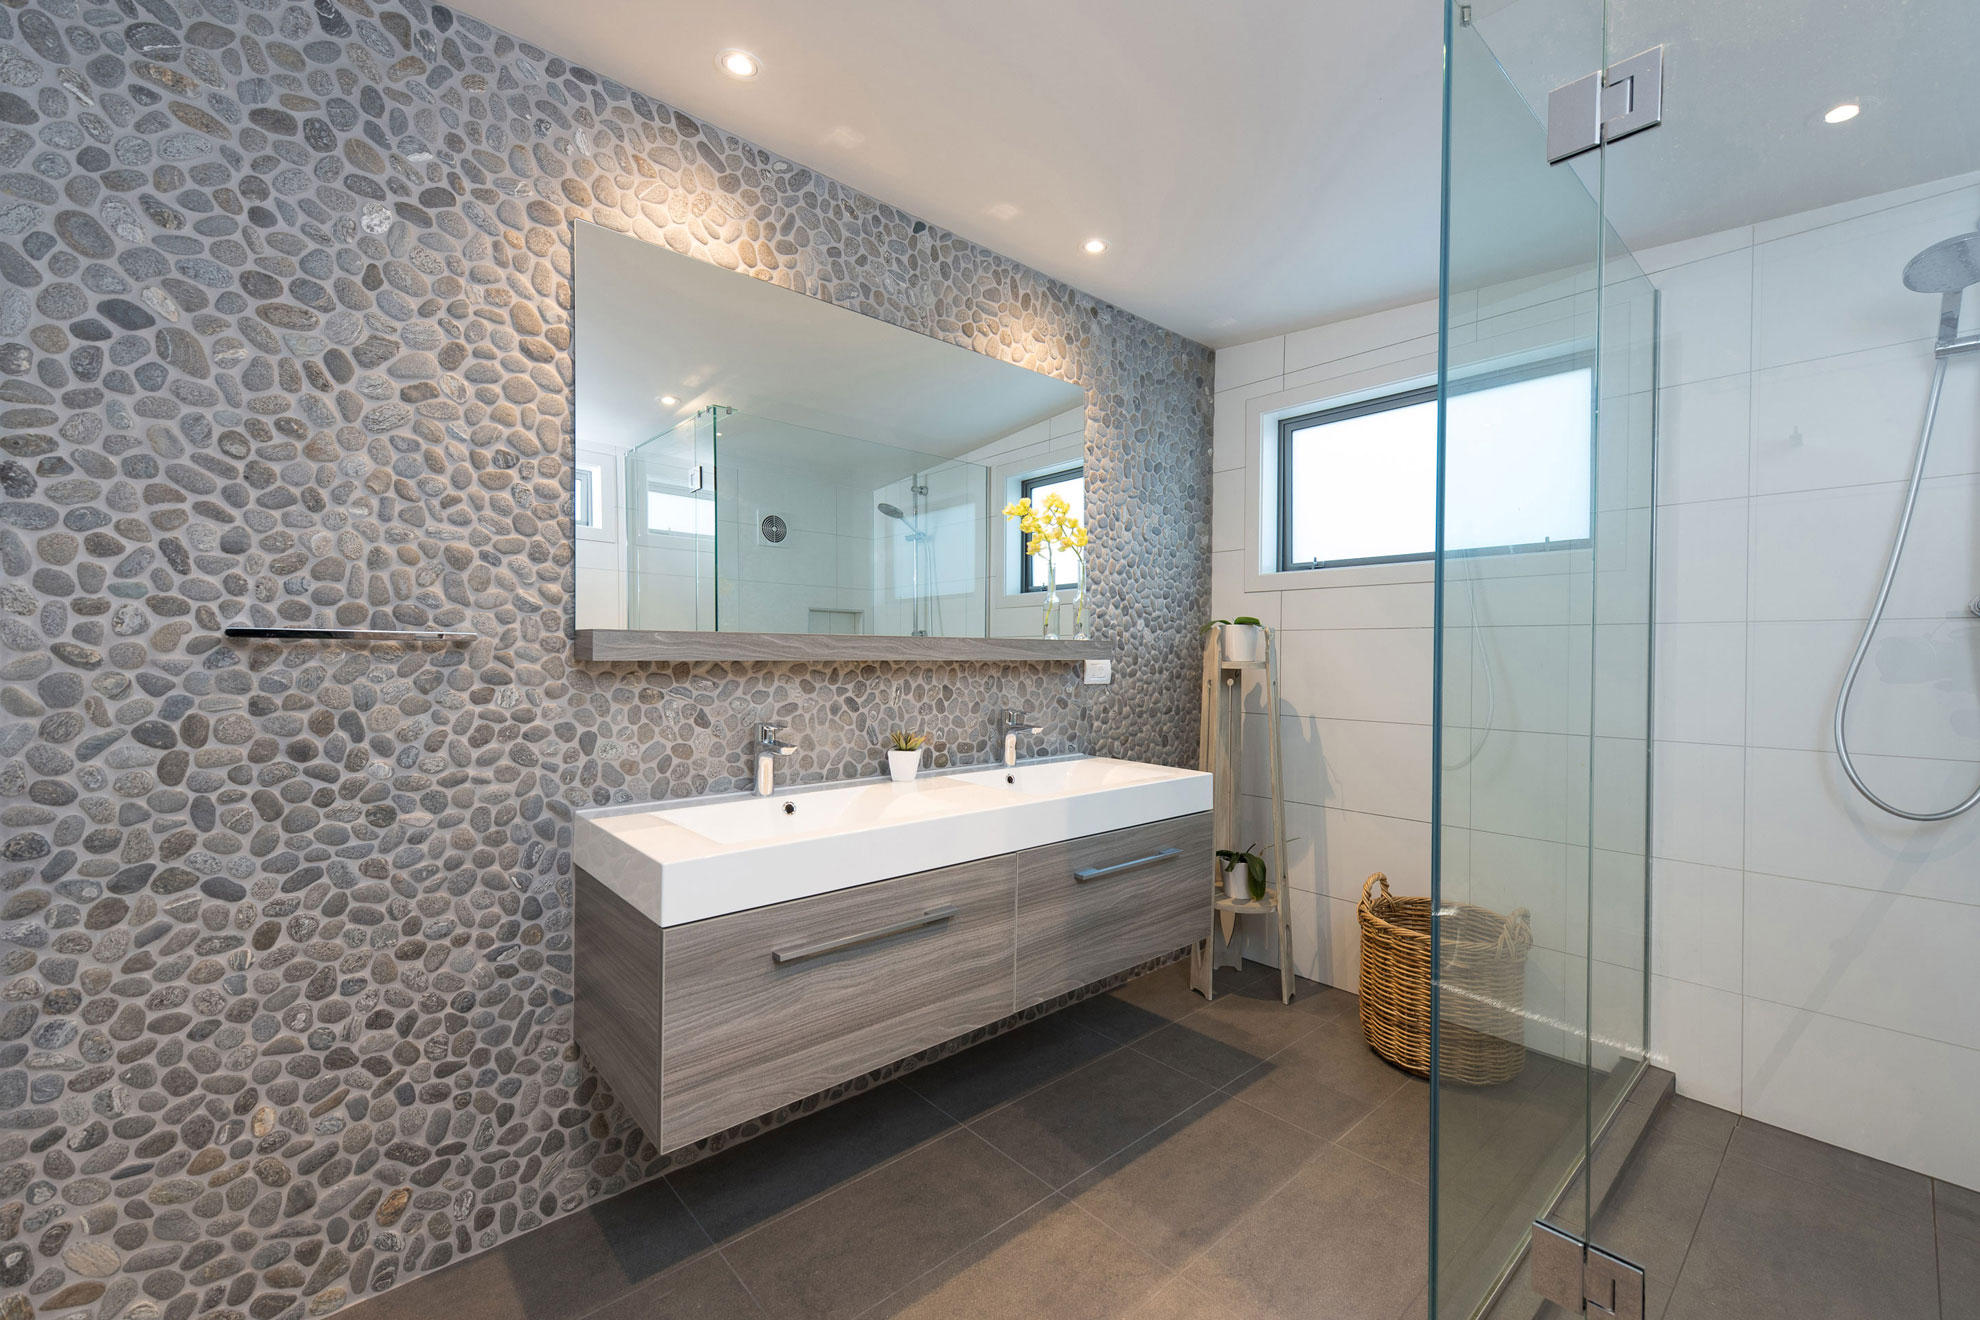 PERFECT PEBBLE  POPPY SEED BLEND  Natural stone mosaics